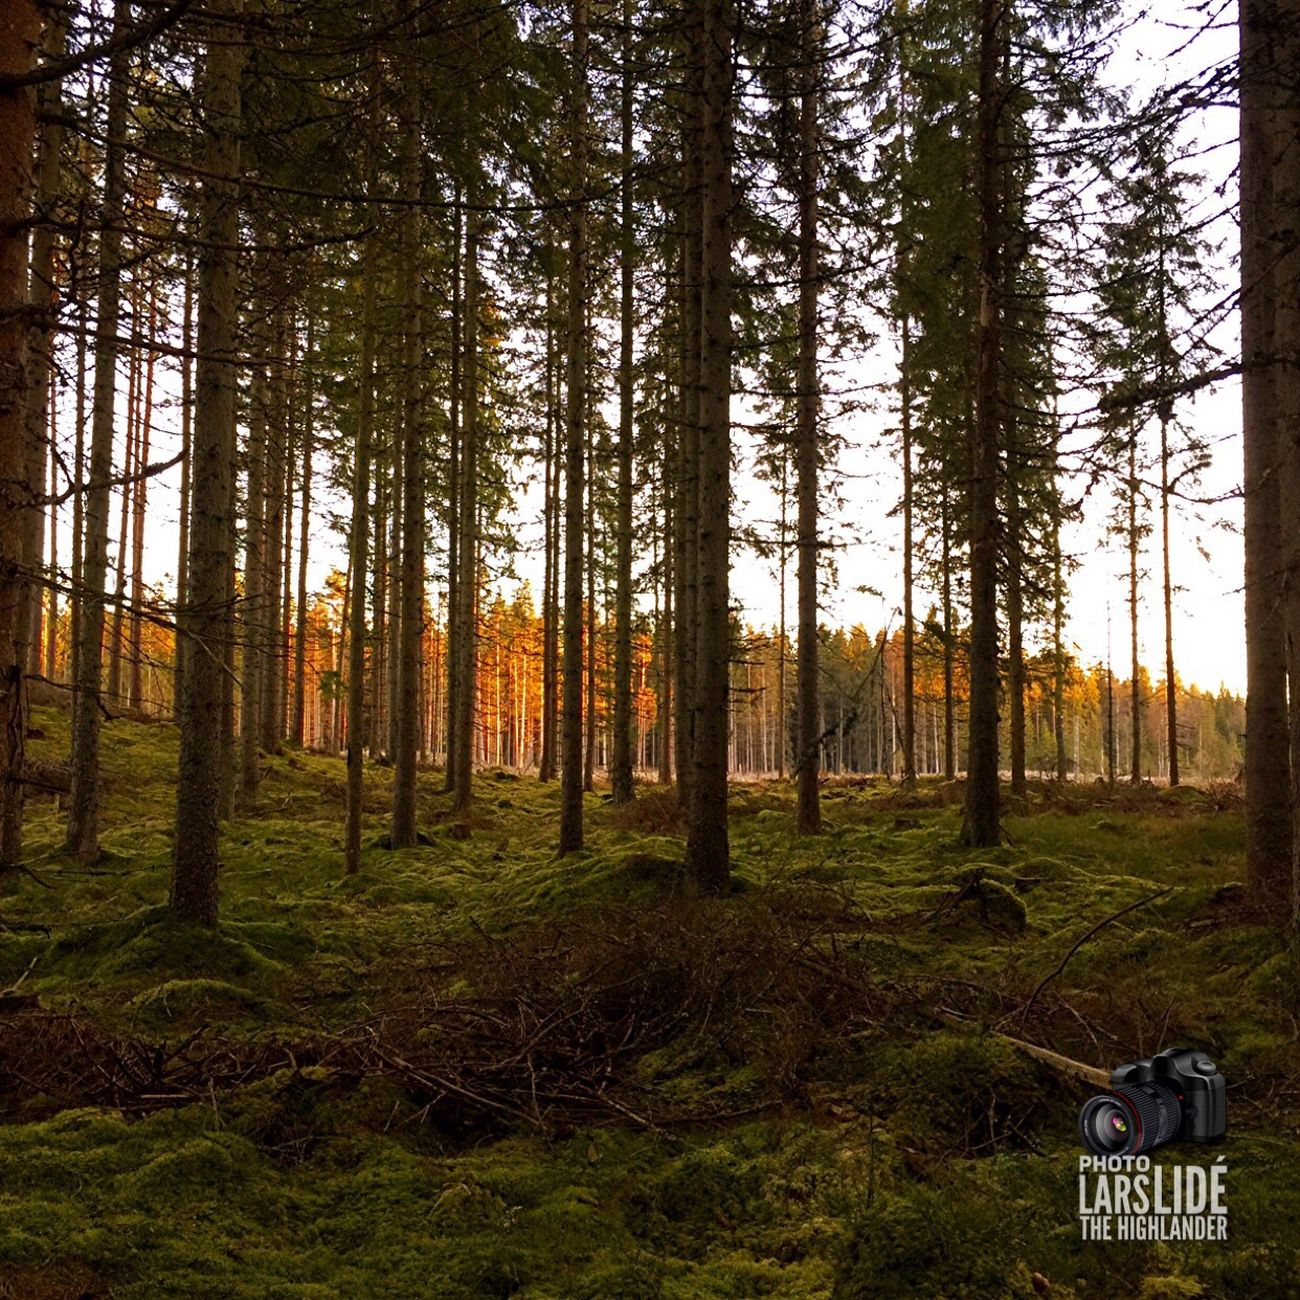 Tree Forest Nature No People Outdoors Beauty In Nature Landscape Countryside Cold Temperature Taking Photos Winter Wilderness Tree Area WoodLand